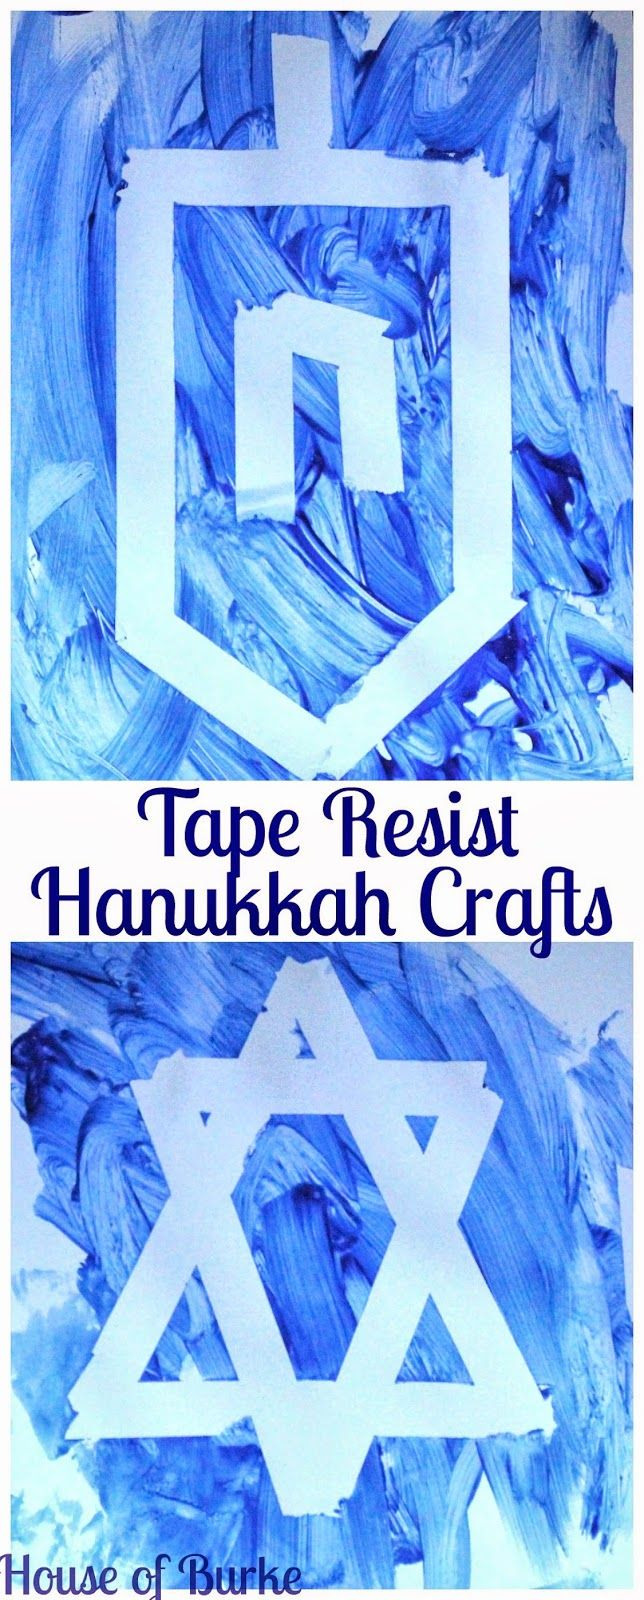 House of Burke: Tape Resist Hanukkah Crafts